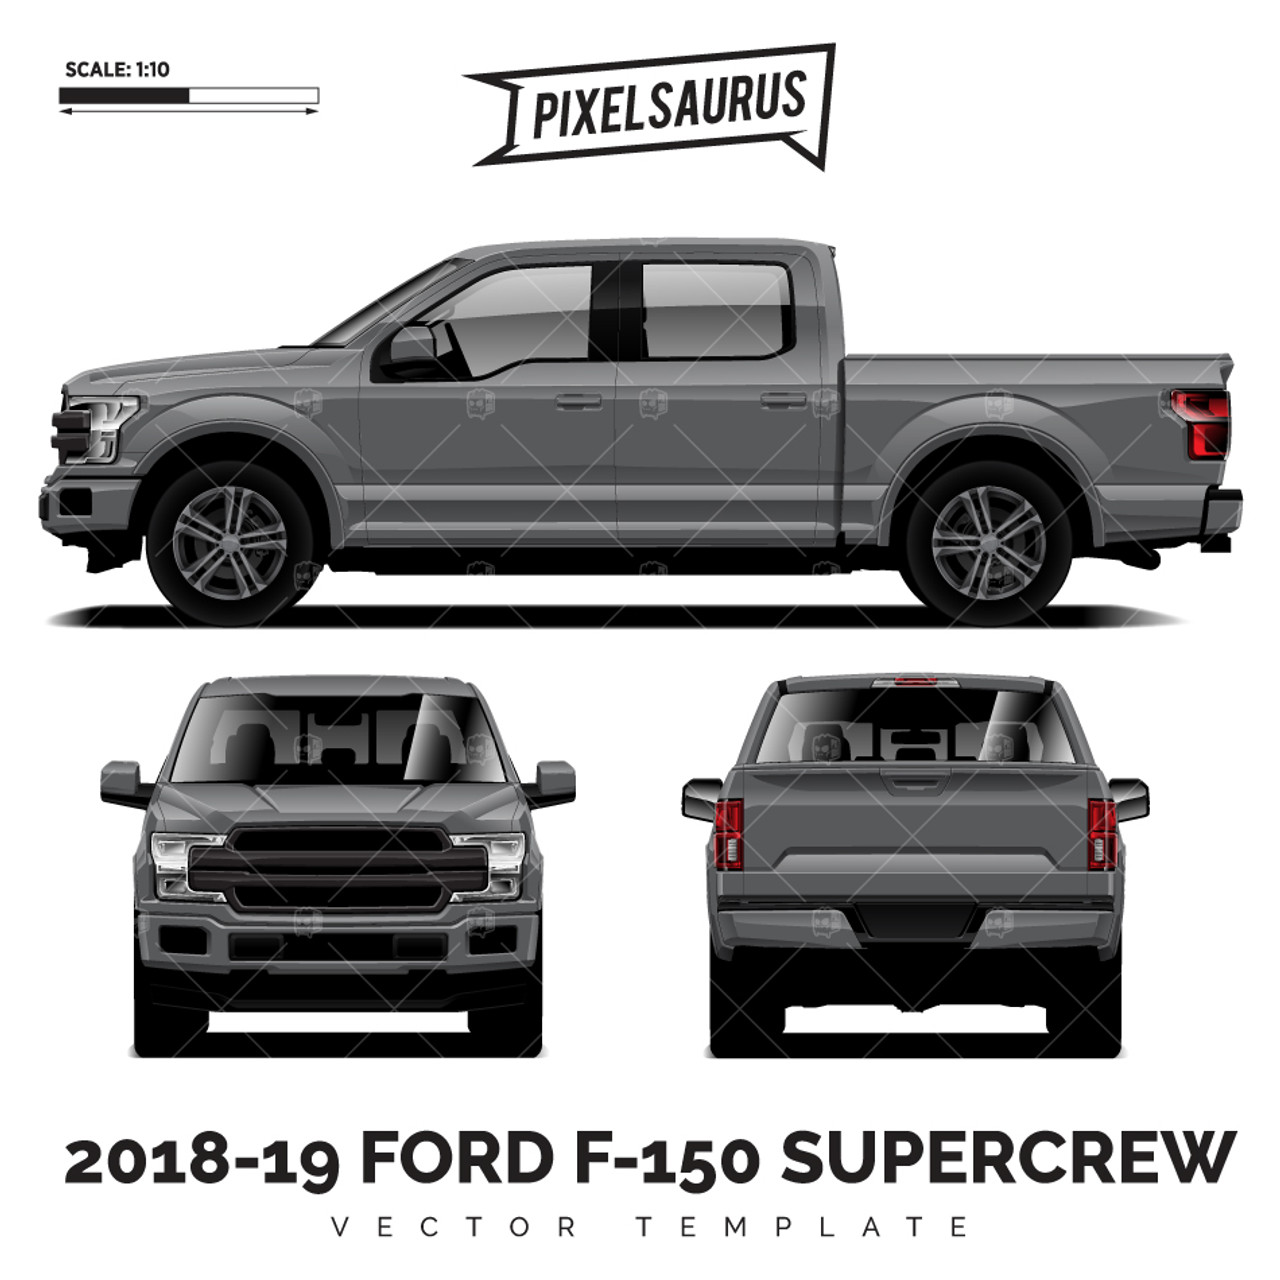 2015-2019 Ford F-150 SuperCrew® vector Template